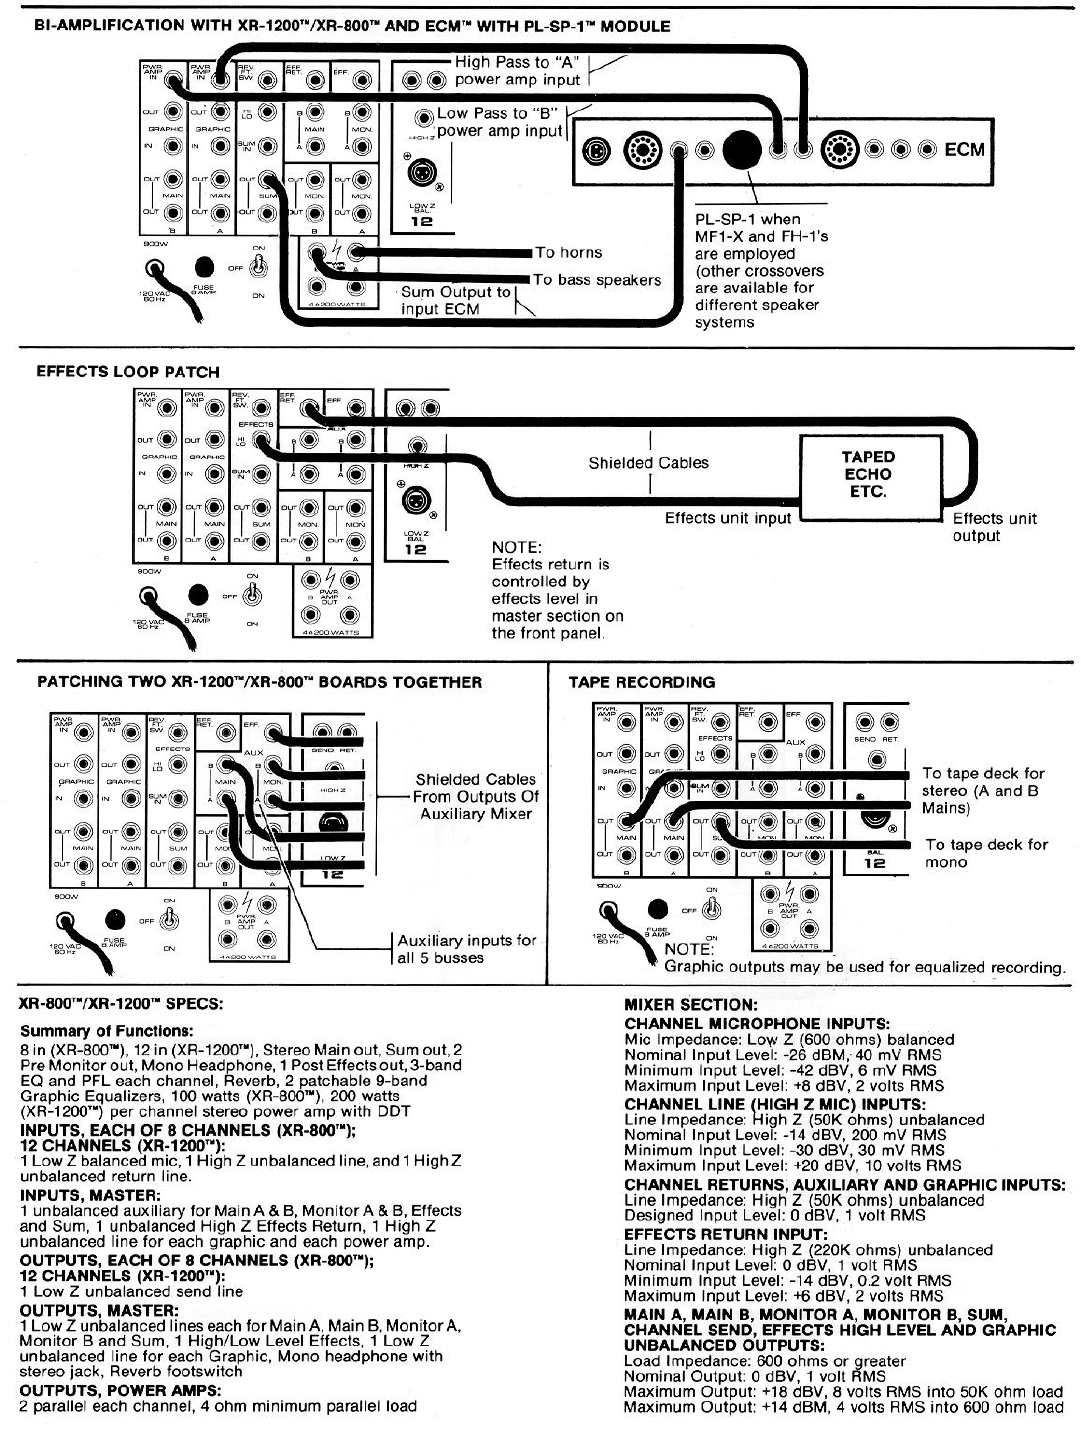 Wonderful Peavey Tracer Wiring Schematic 90 S Pictures - Best Image ...